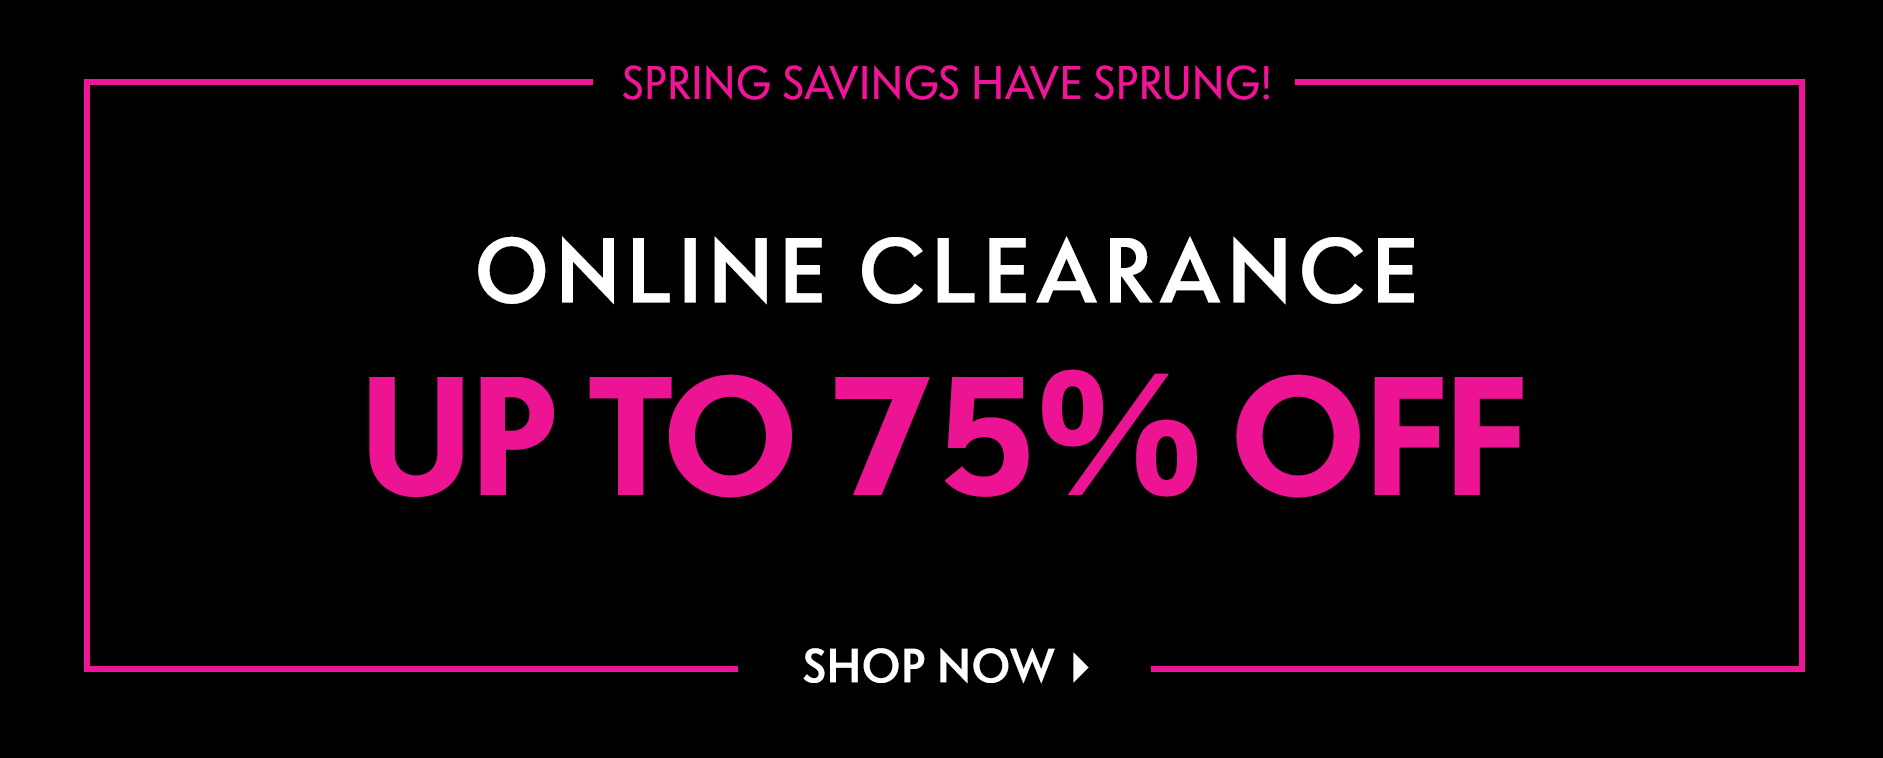 Spring savings have sprung! Online Clearance Up to 75% off